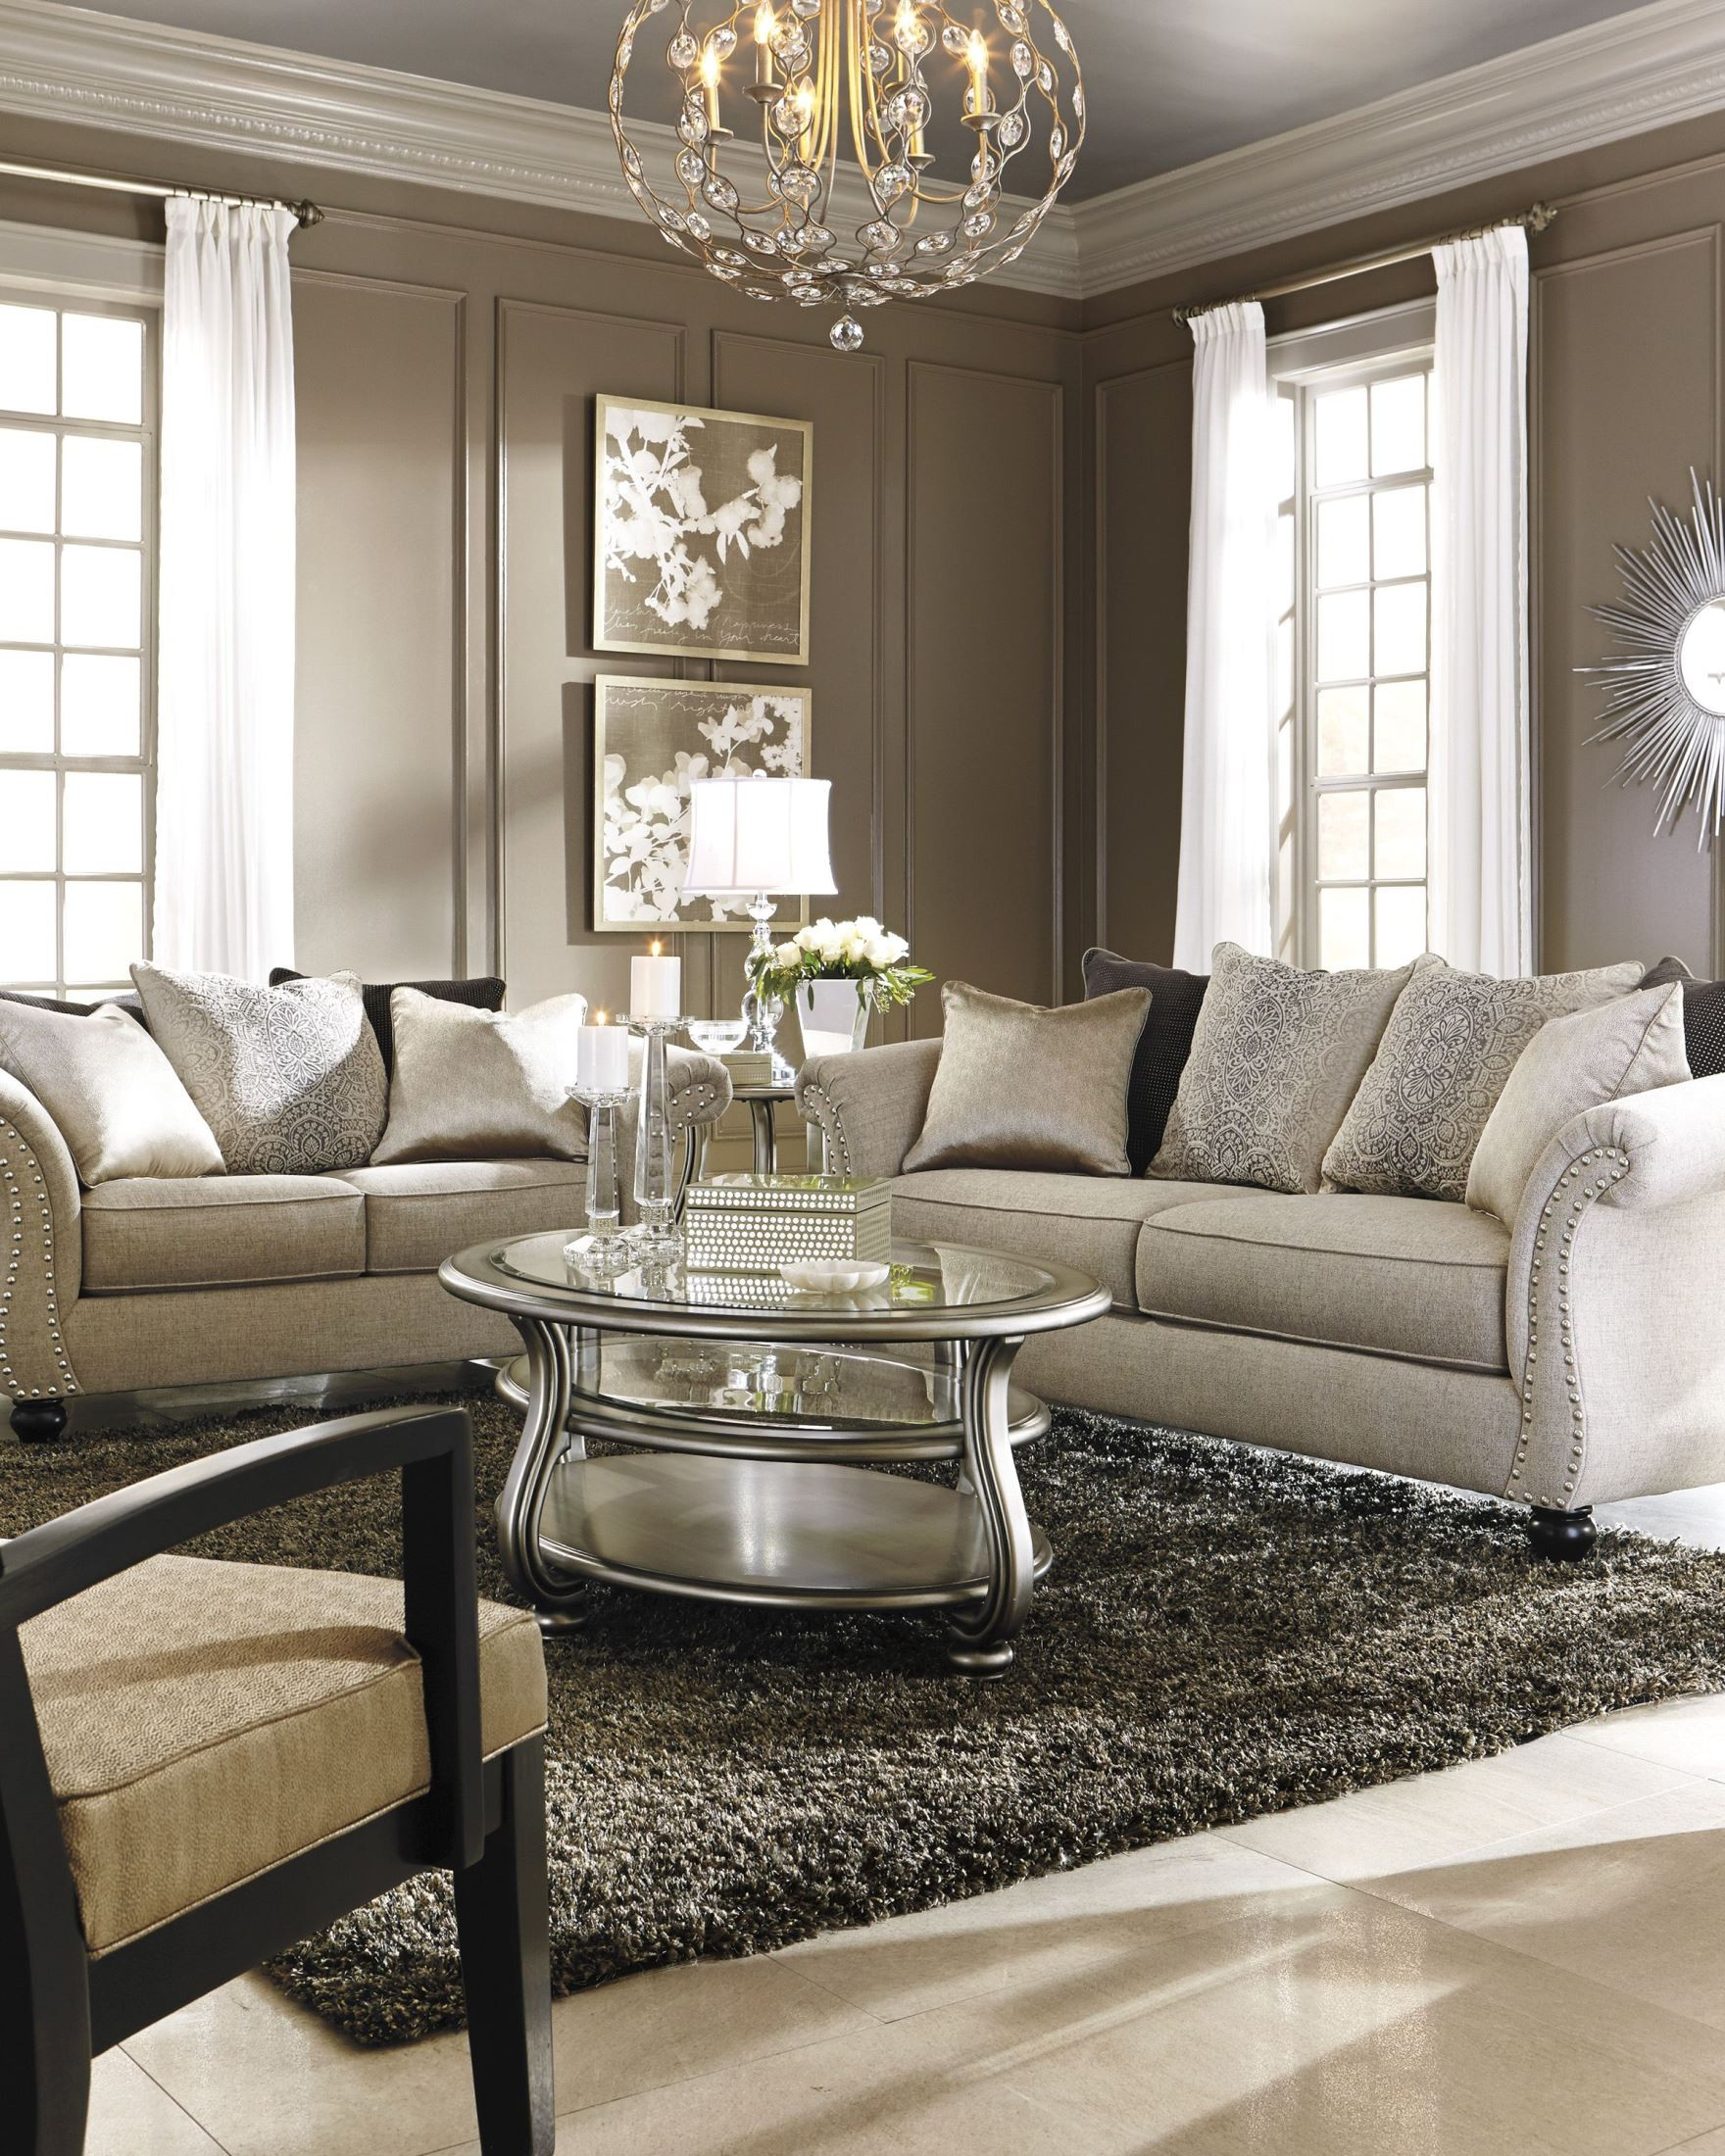 Lemoore Fog Accent Chair From Ashley 4270060 Coleman